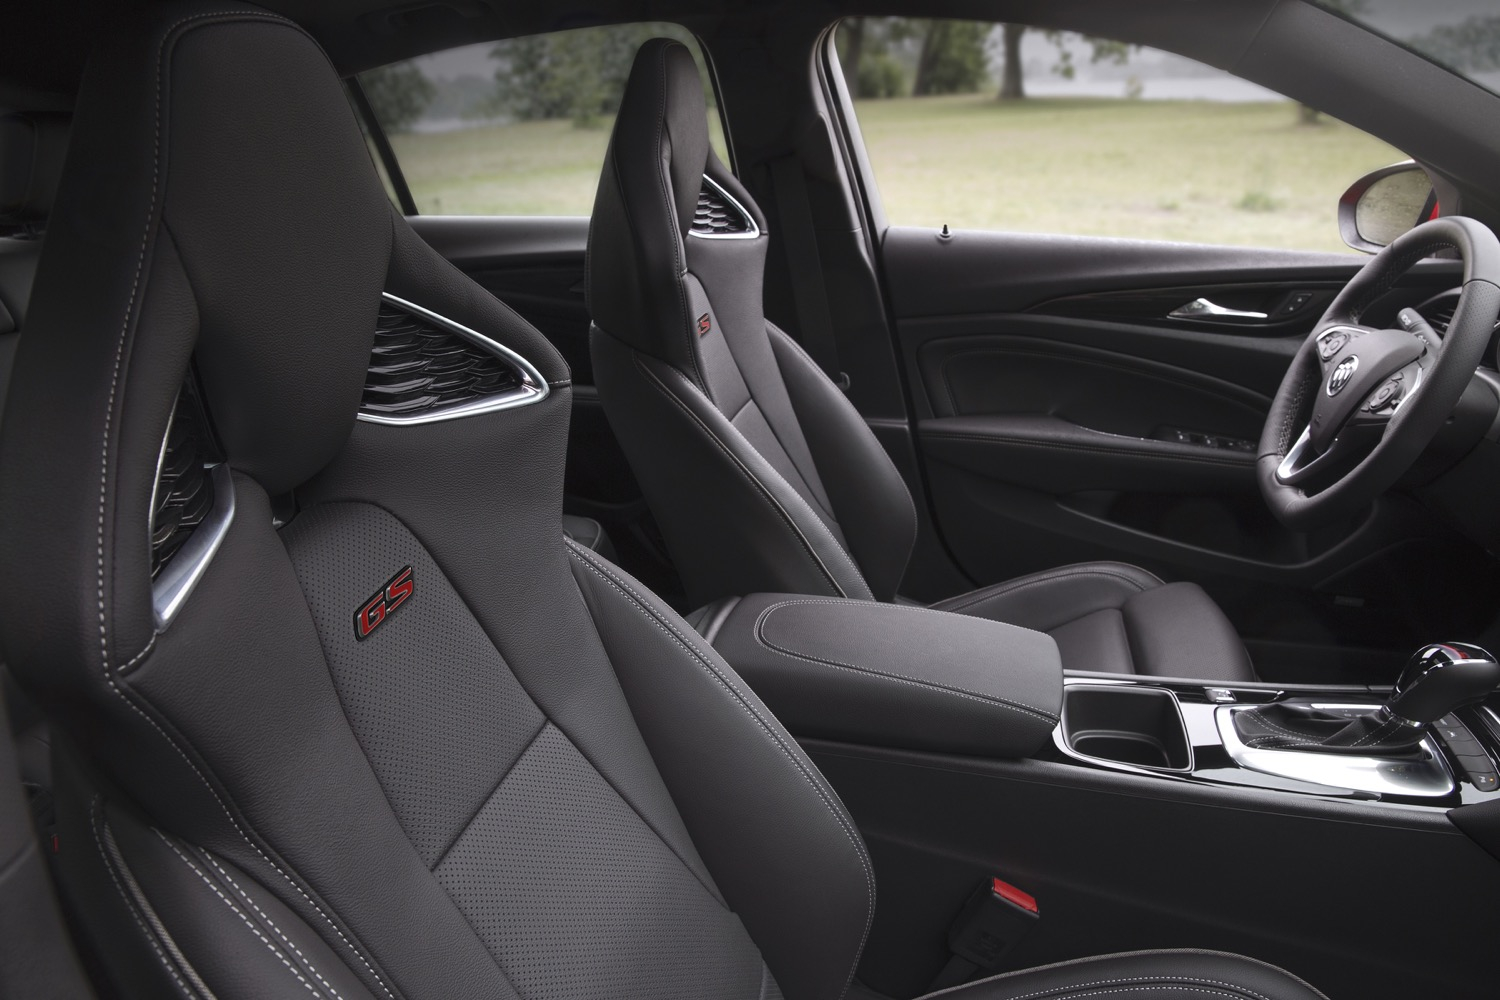 2018 Buick Regal Interior Colors | Gm Authority New 2021 Buick Regal Sportback Interior, Awd, Colors